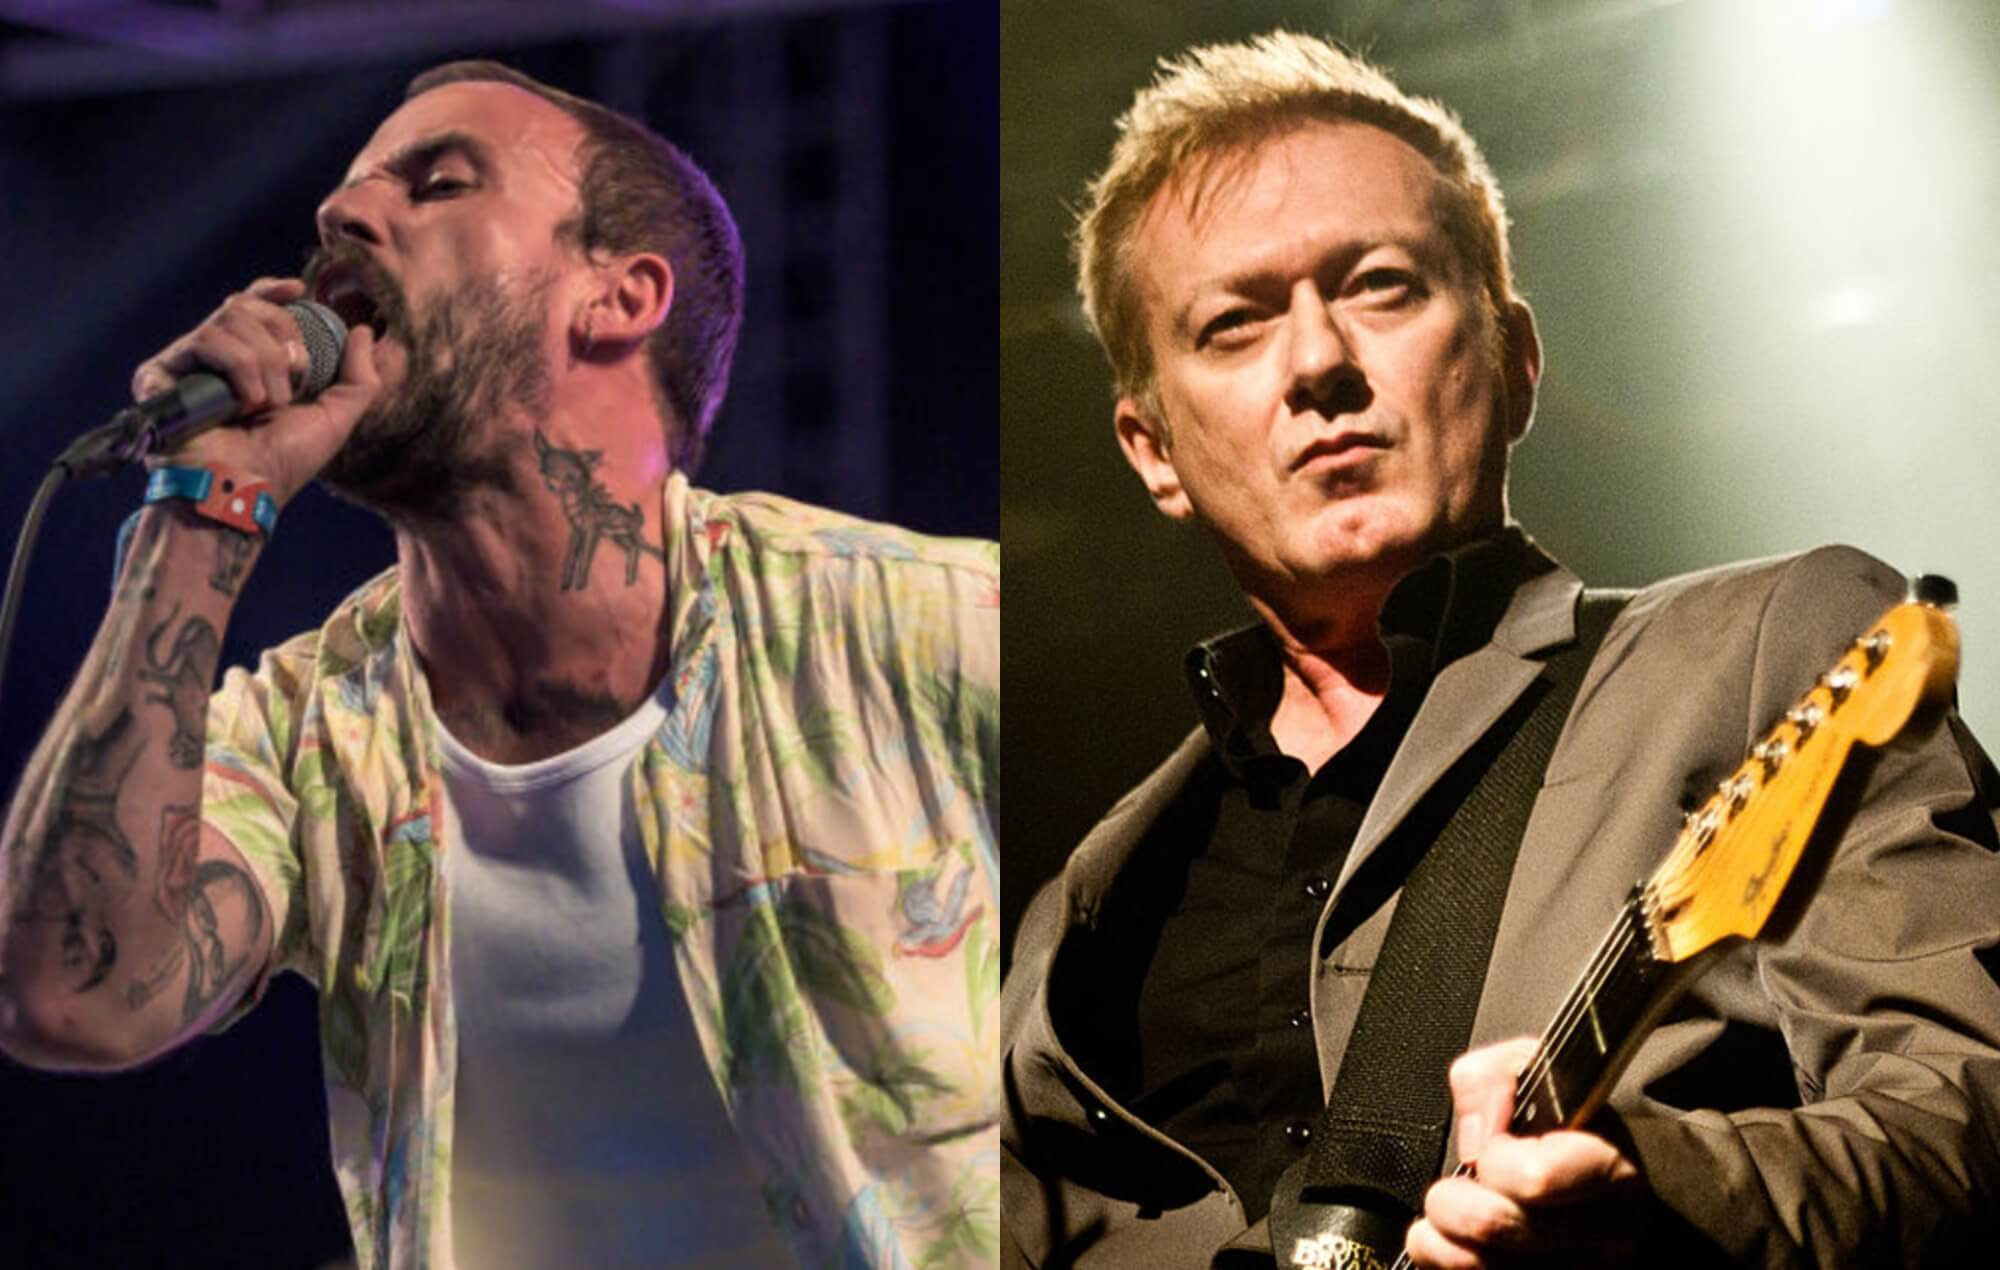 DLES' Joe Talbot, Gang of Four's Andy Gill